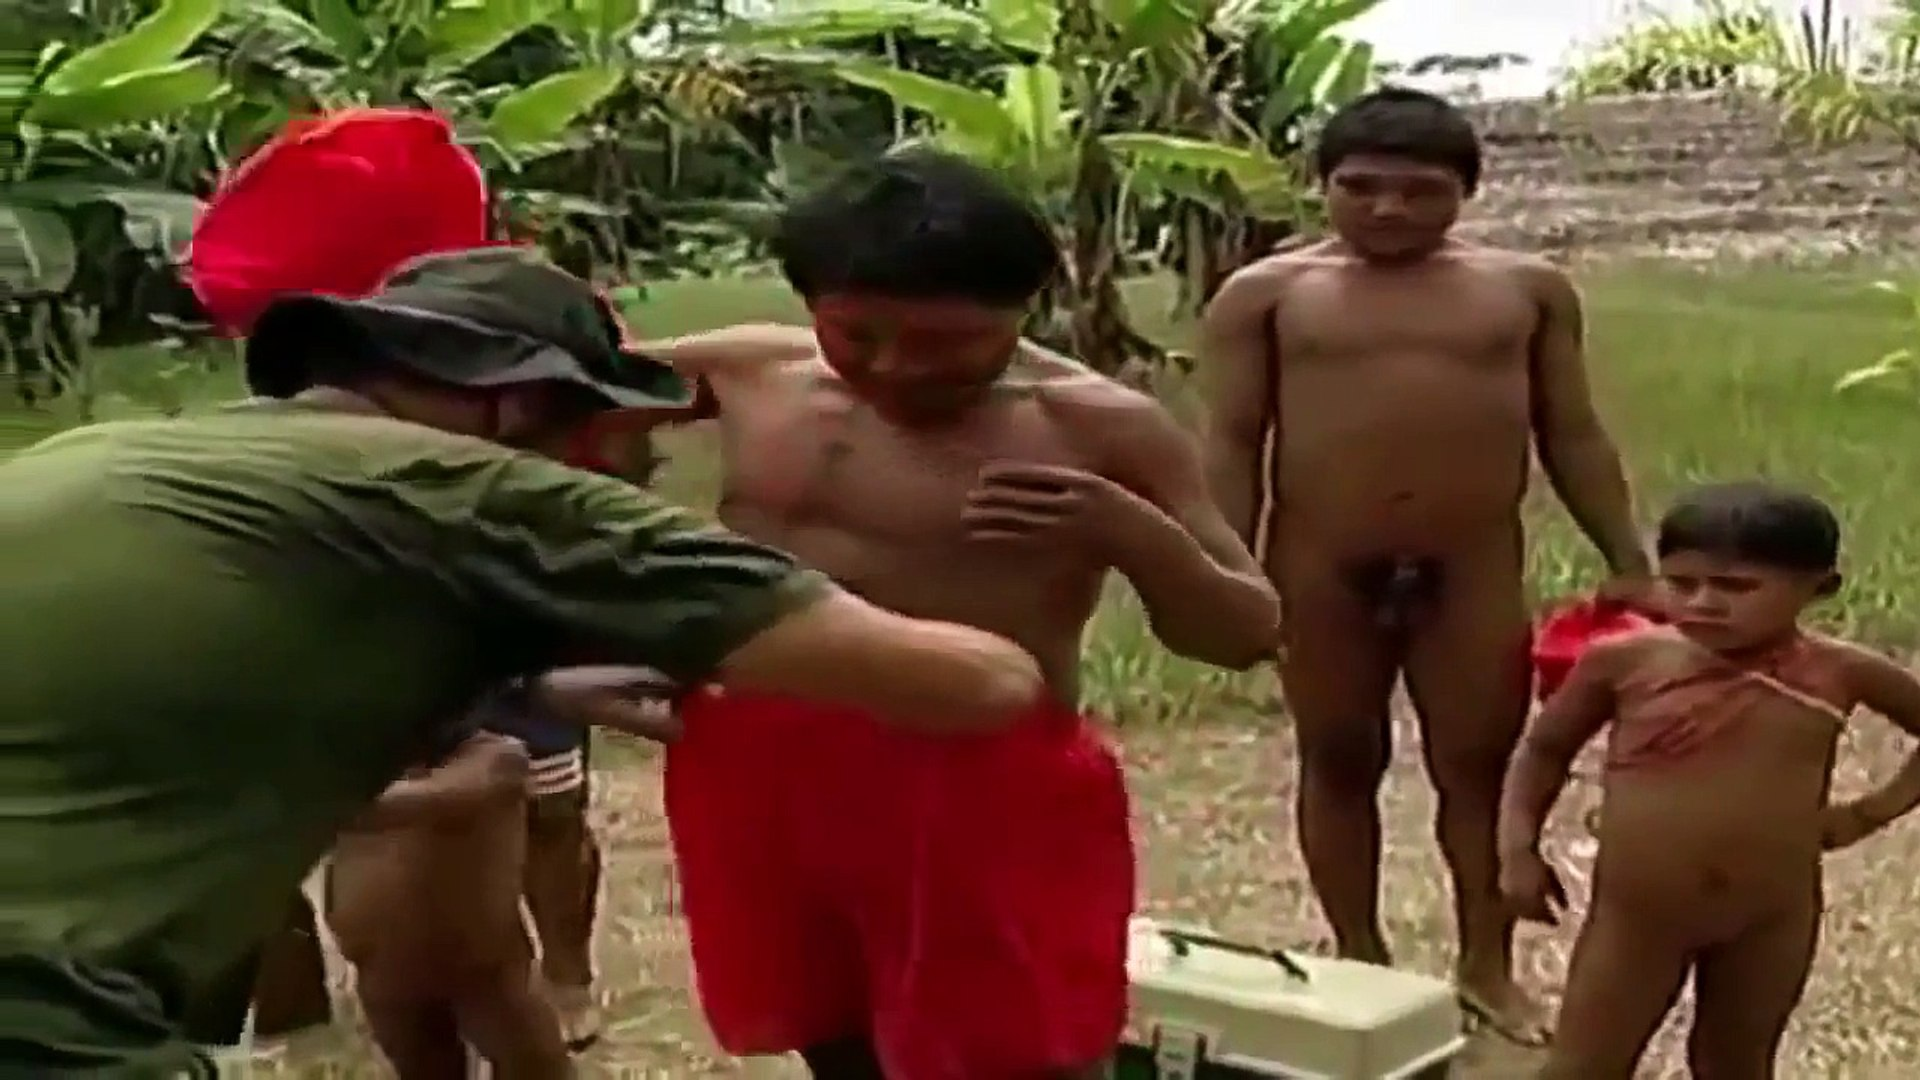 Amazon Documentary 2015 - Native People in Amazon Rain Forest rull Documentary June 2015